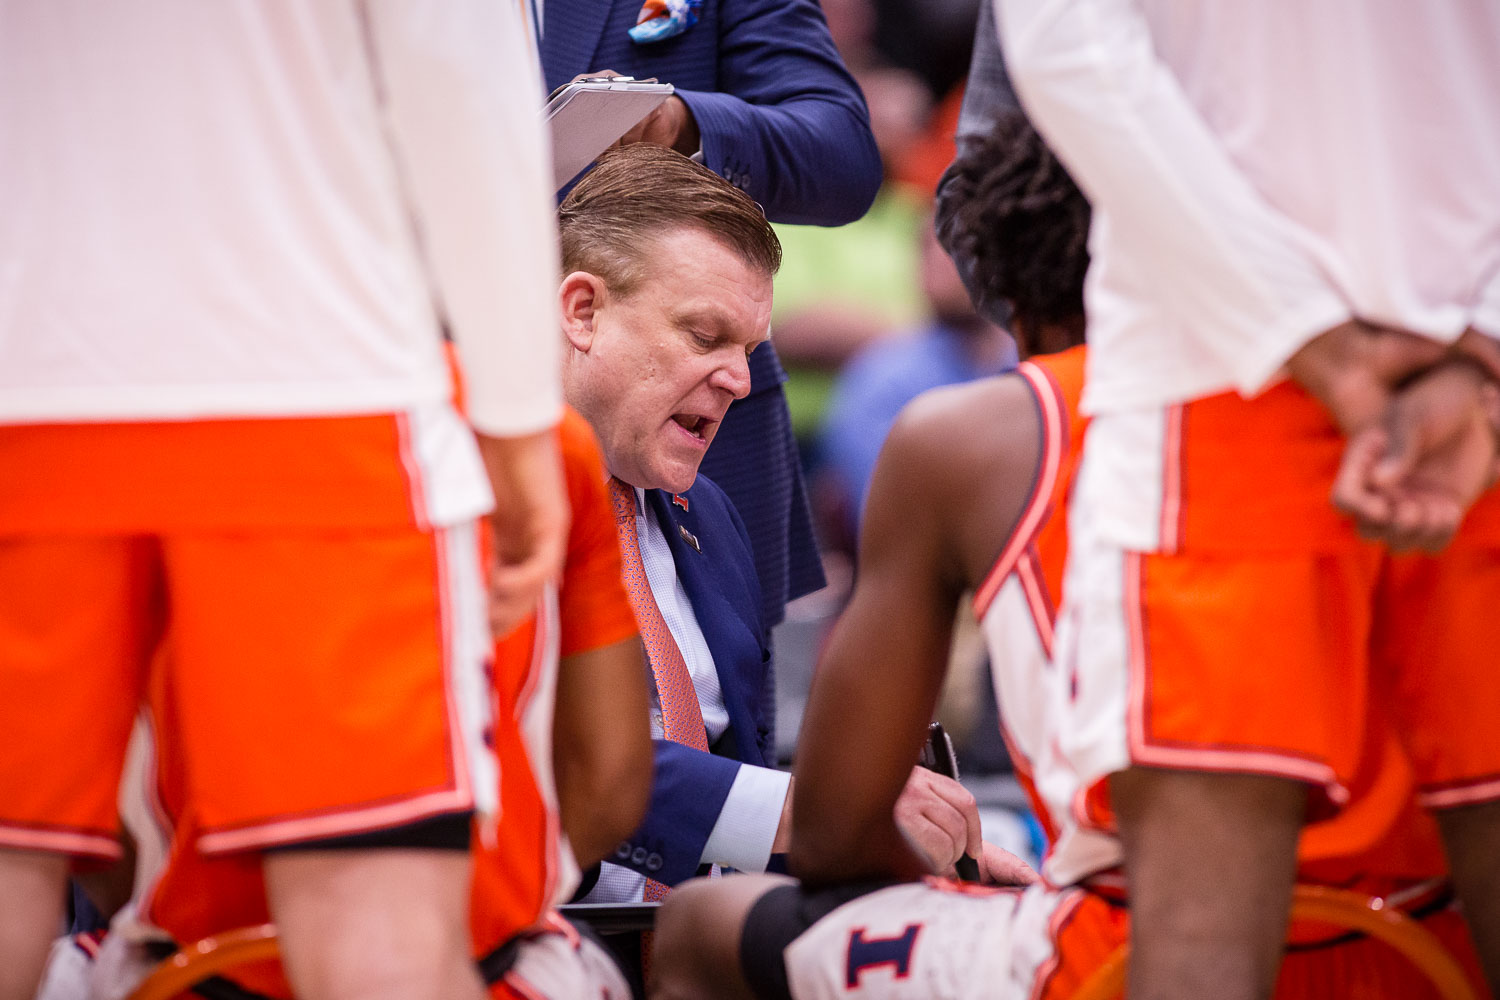 Illinois+head+coach+Brad+Underwood+draws+up+a+play+during+a+timeout+in+the+game+against+Northwestern+in+the+first+round+of+the+Big+Ten+Tournament+at+the+United+Center+on+Wednesday.